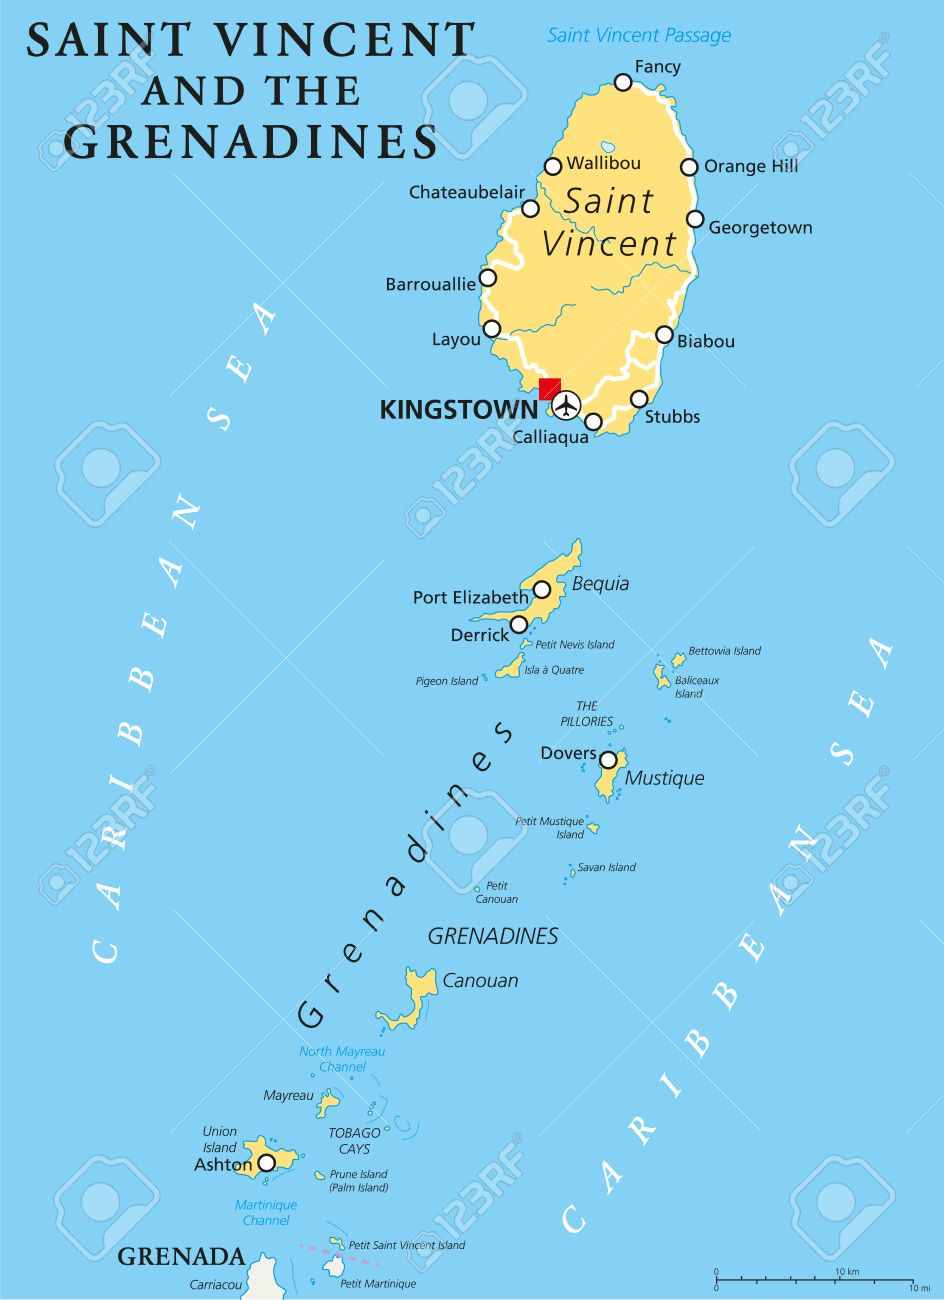 Saint Vincent And The Grenadines Political Map With Capital - Saint vincent and the grenadines map